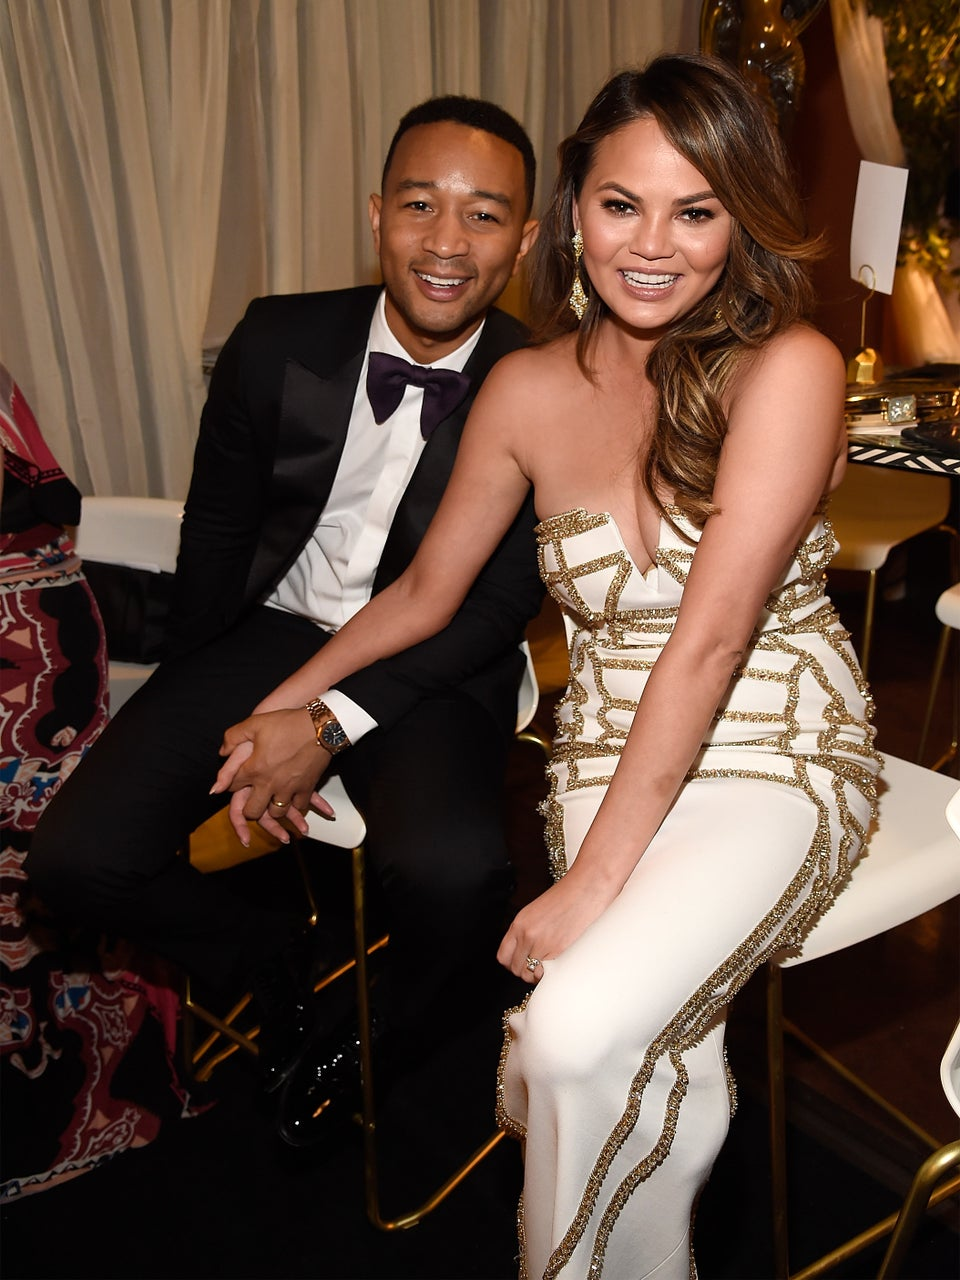 Finally! Chrissy Teigen Joins John Legend On Stage For The Moment Fans Have Been Waiting For